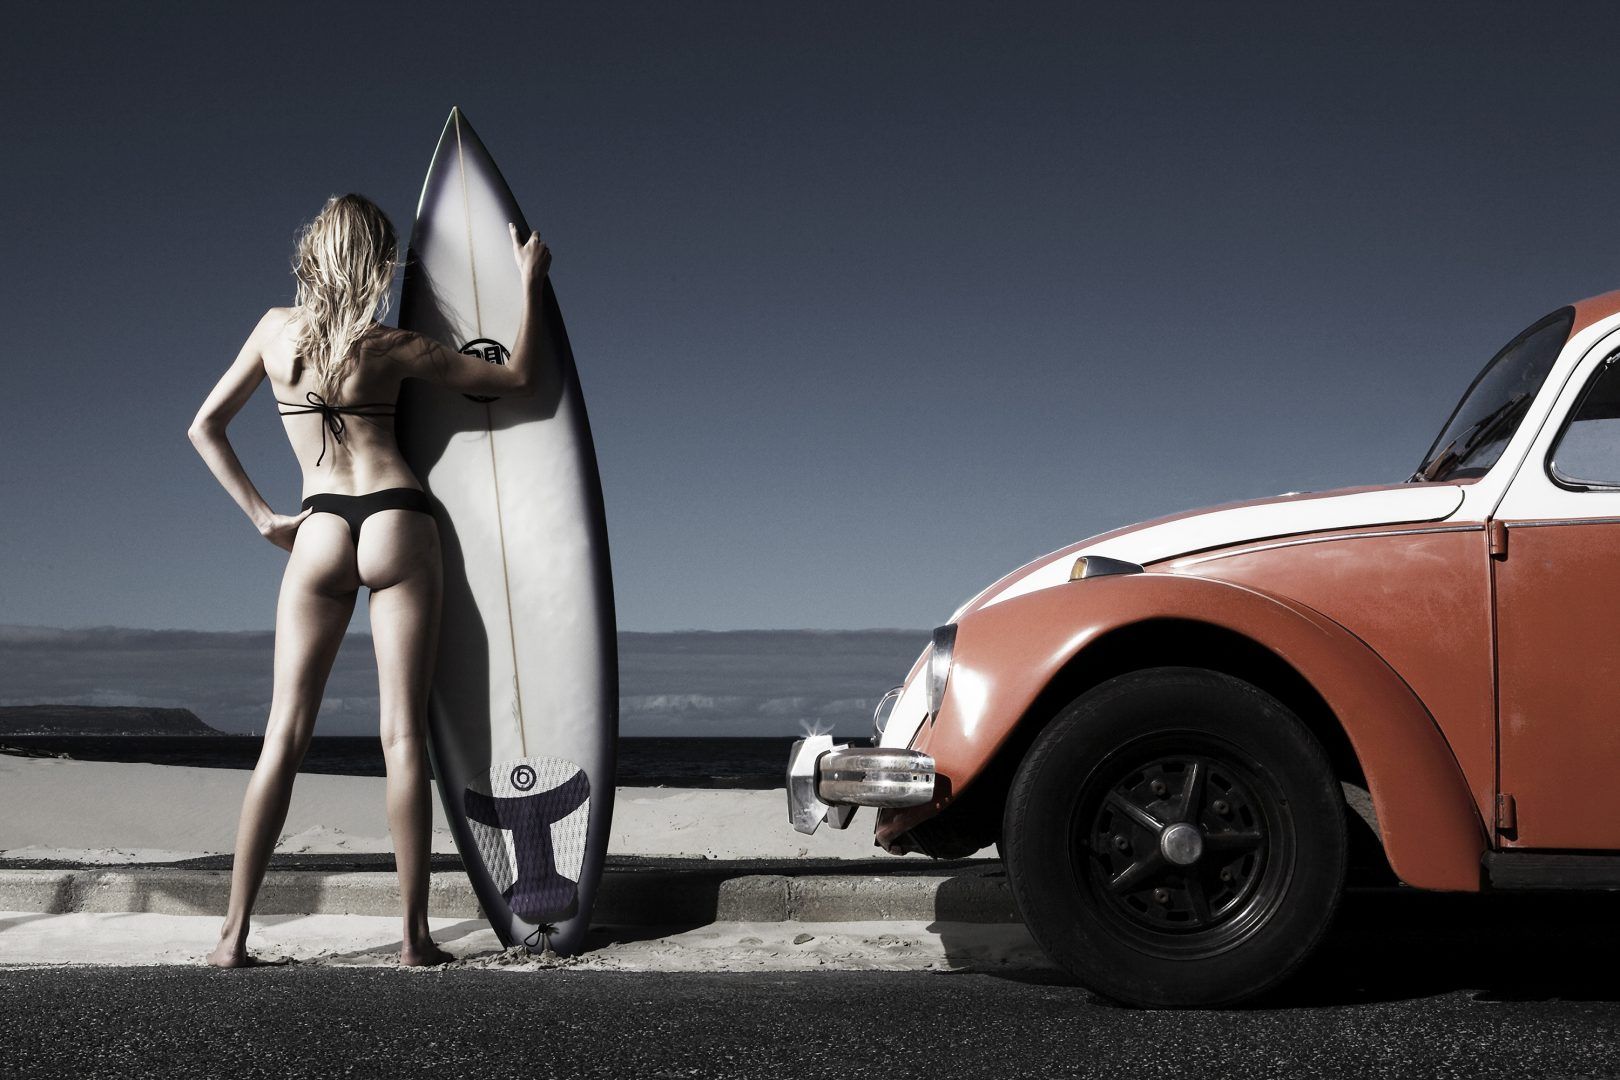 Girl in swimsuit standing next to beatle car with surfboard by Stefan Rappo